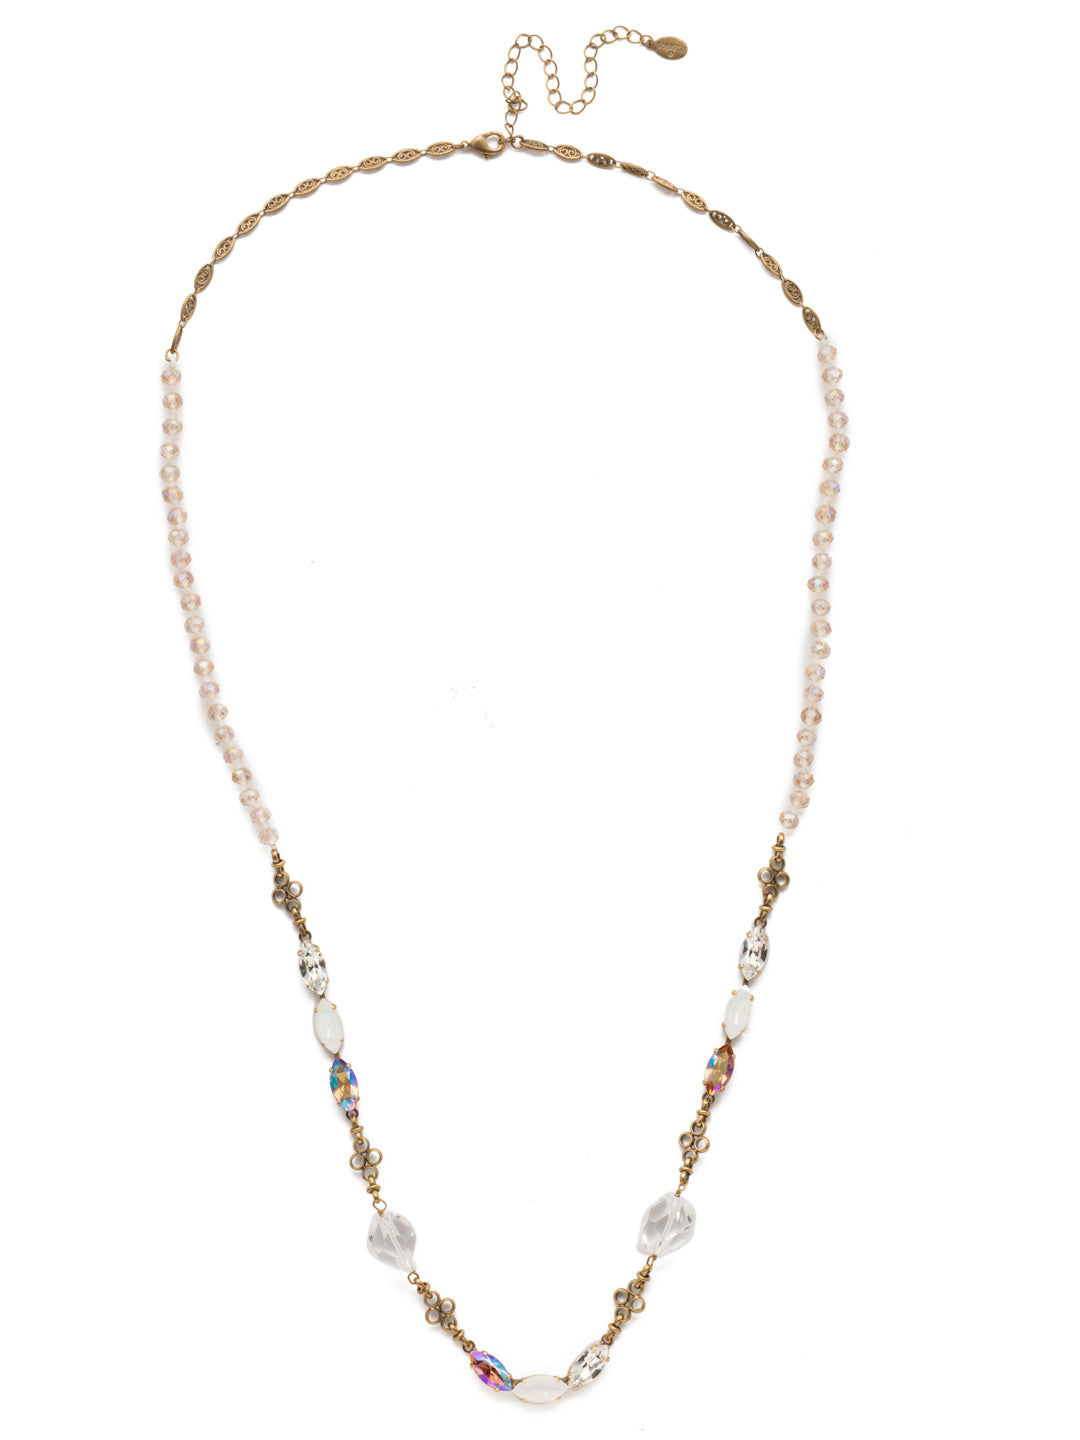 Vitrine Long Necklace - NEK13AGROB